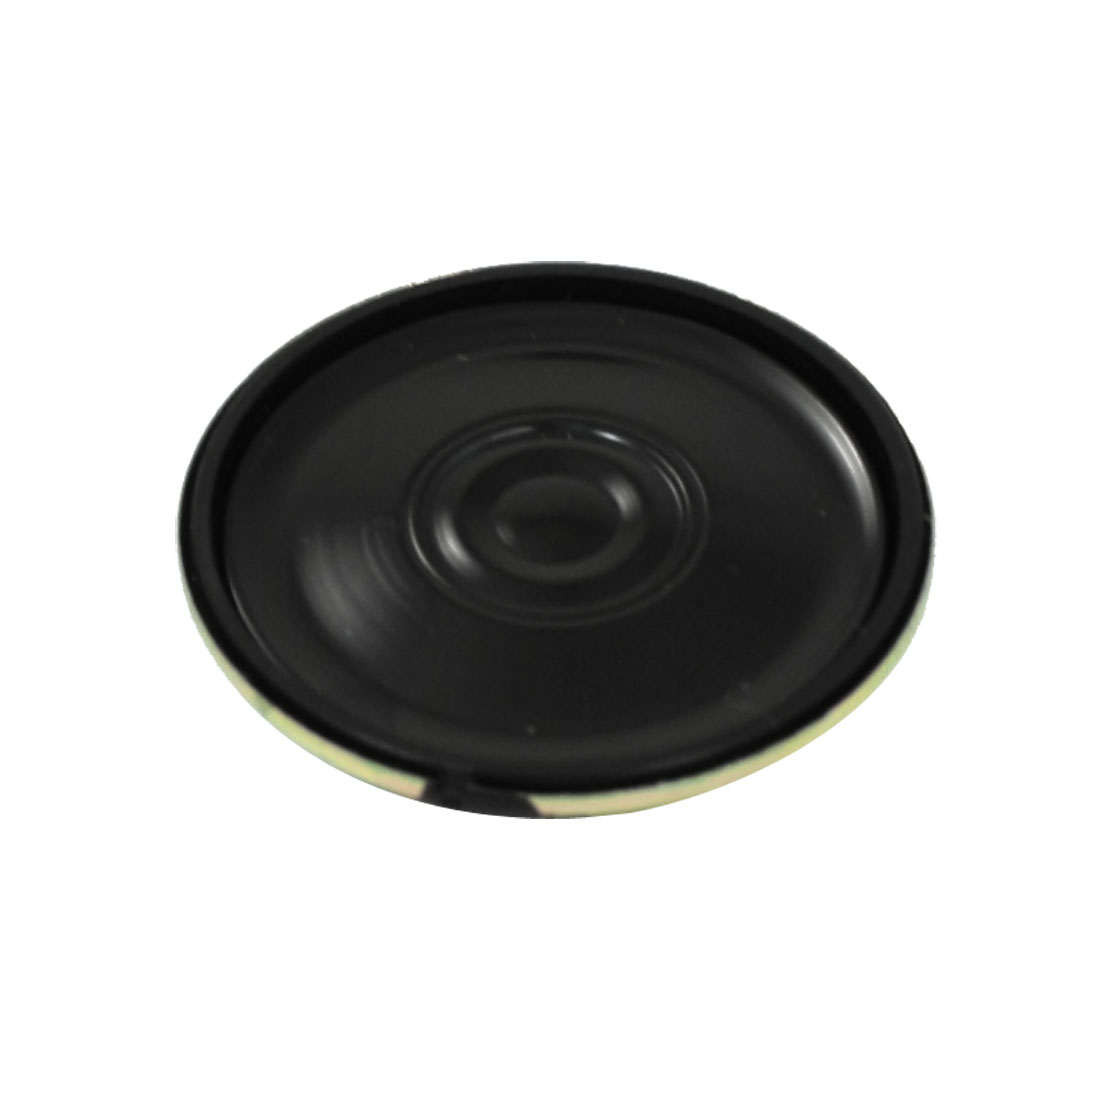 30mm Round Shell Magnetic Type Slim Speaker Horn 8 Ohm 0.5W